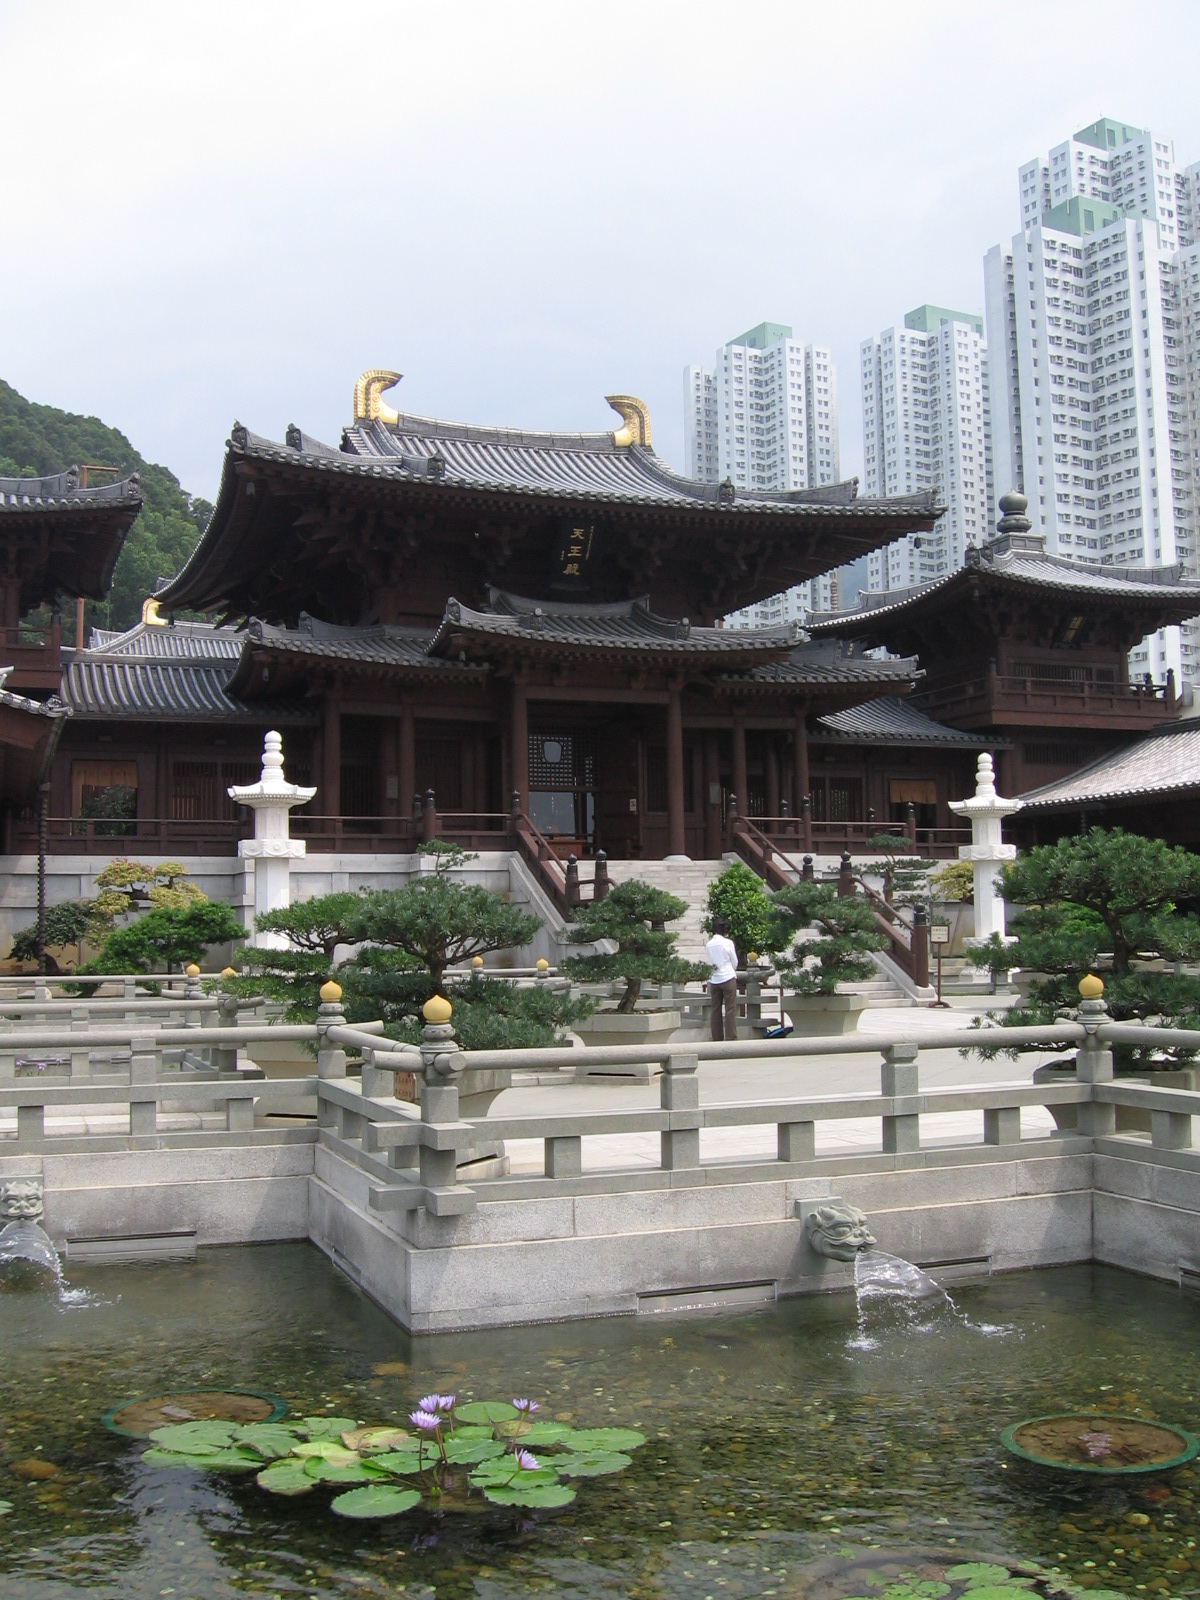 http://upload.wikimedia.org/wikipedia/commons/4/4c/Chi_Lin_Nunnery_8%2C_Mar_06.JPG